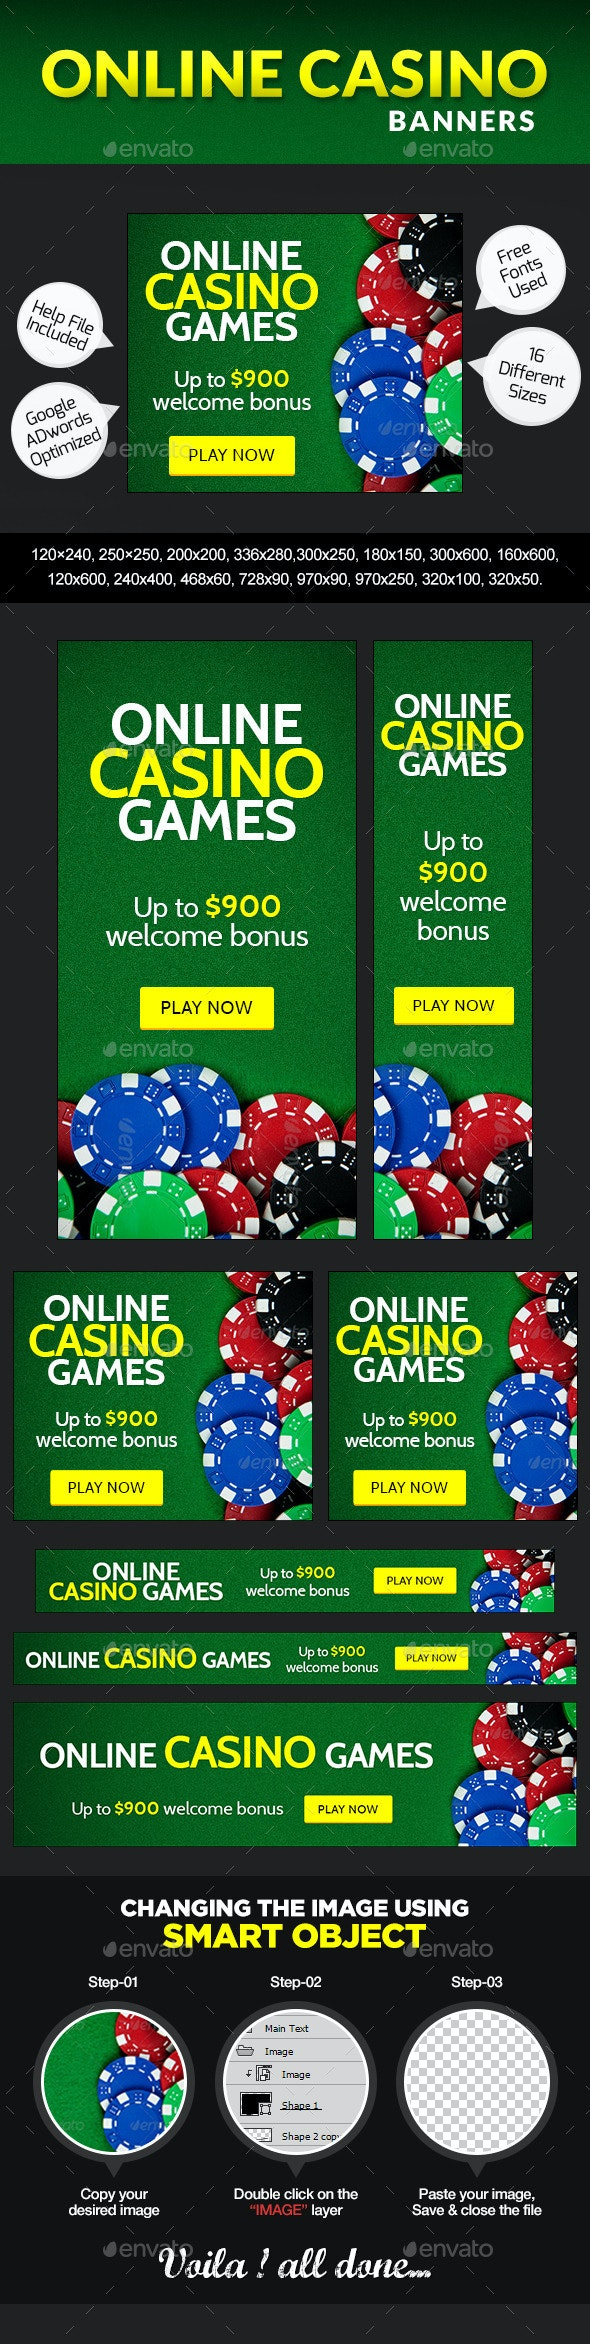 Casino Banner Design - Banners & Ads Web Elements